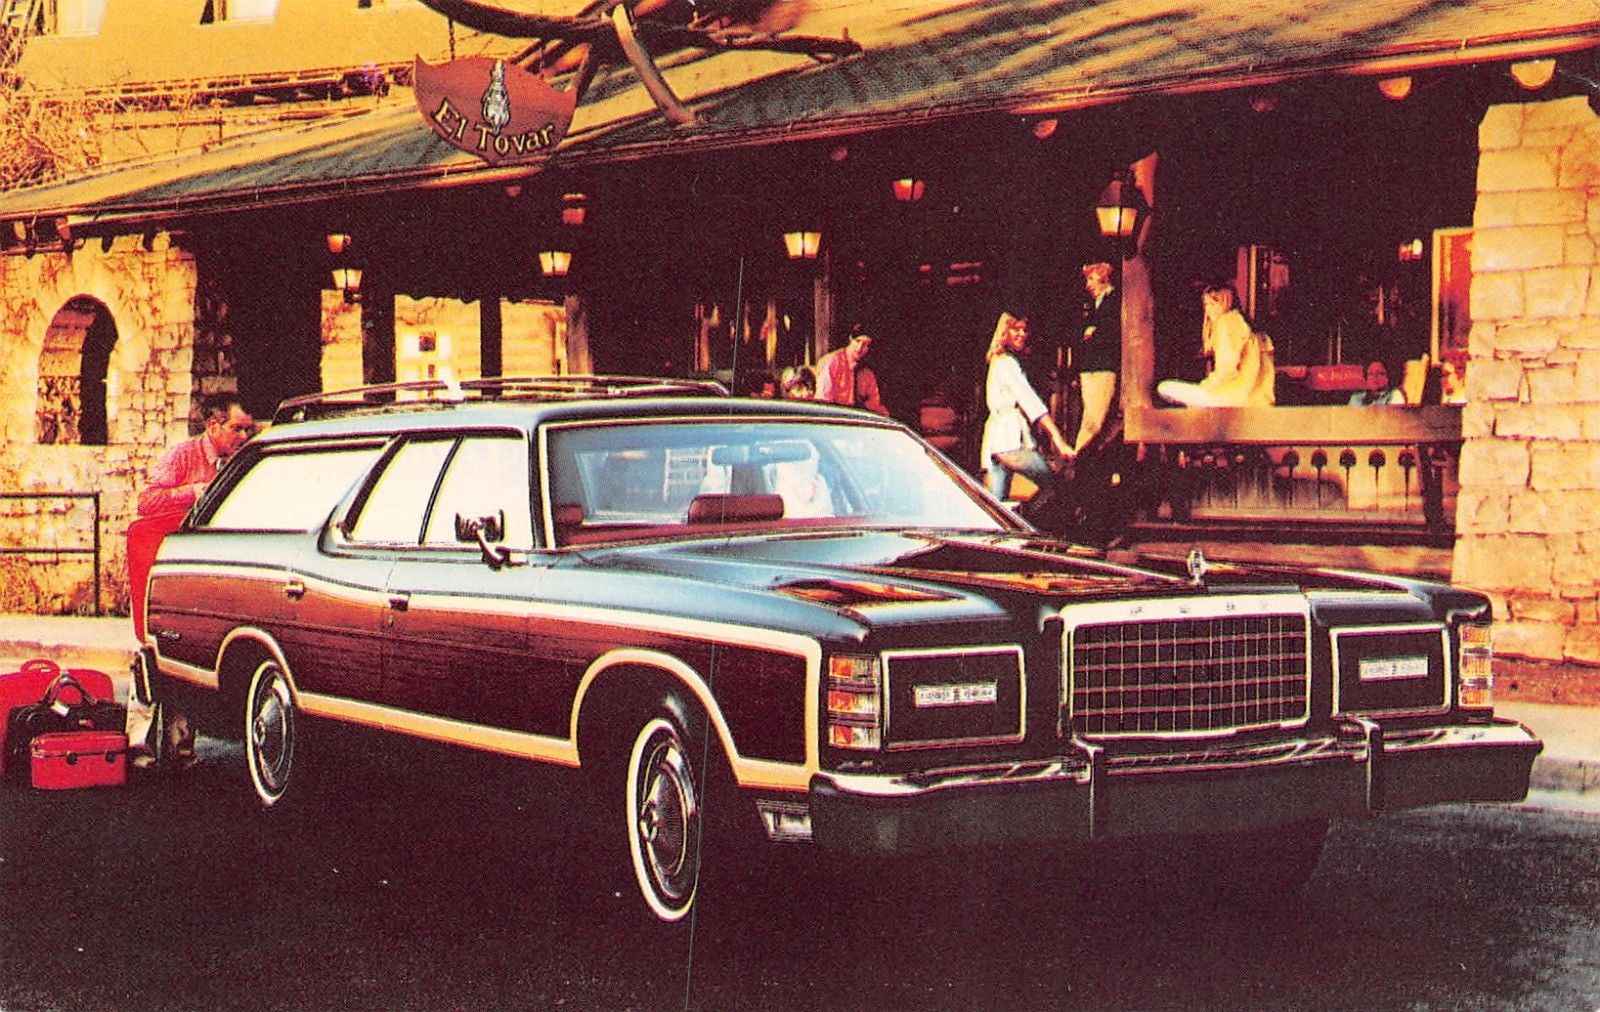 Car Dealerships In Champaign Il >> Champaign Il University Ford Sales Car Dealer Country Squire